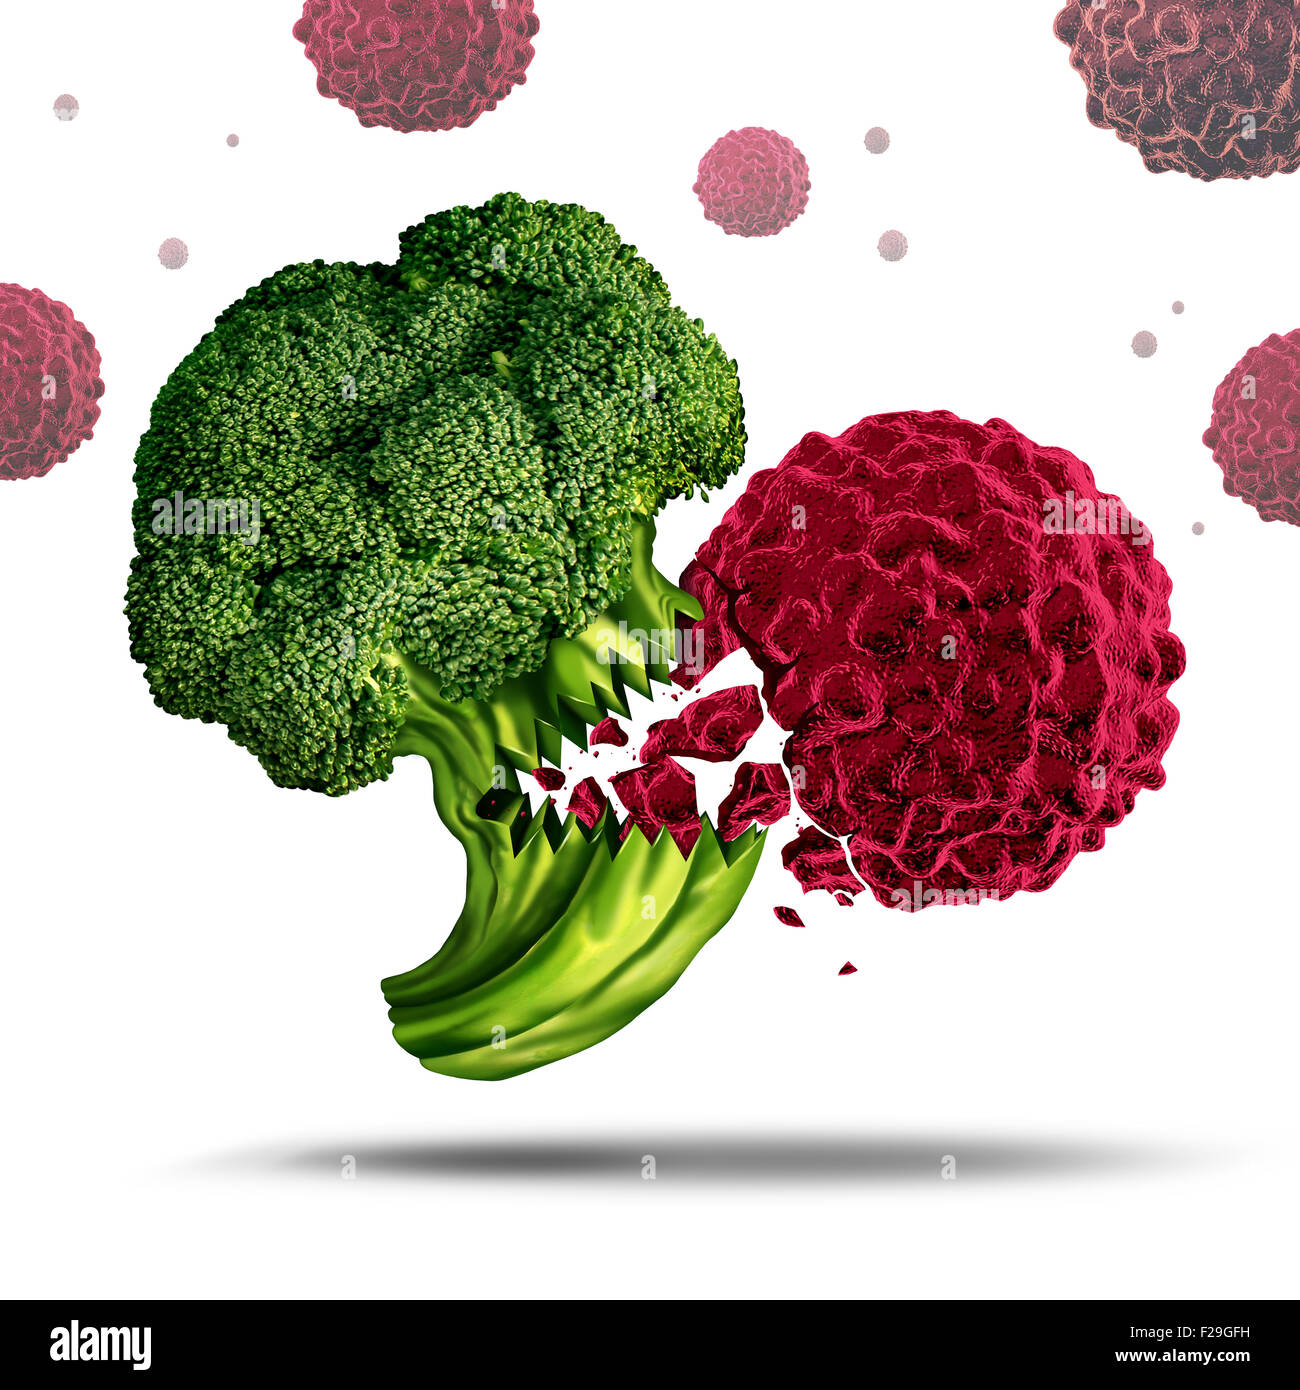 Superfood concept or super food symbol as a Broccoli character eating a cancer cell to prevent disease as a nutrient - Stock Image